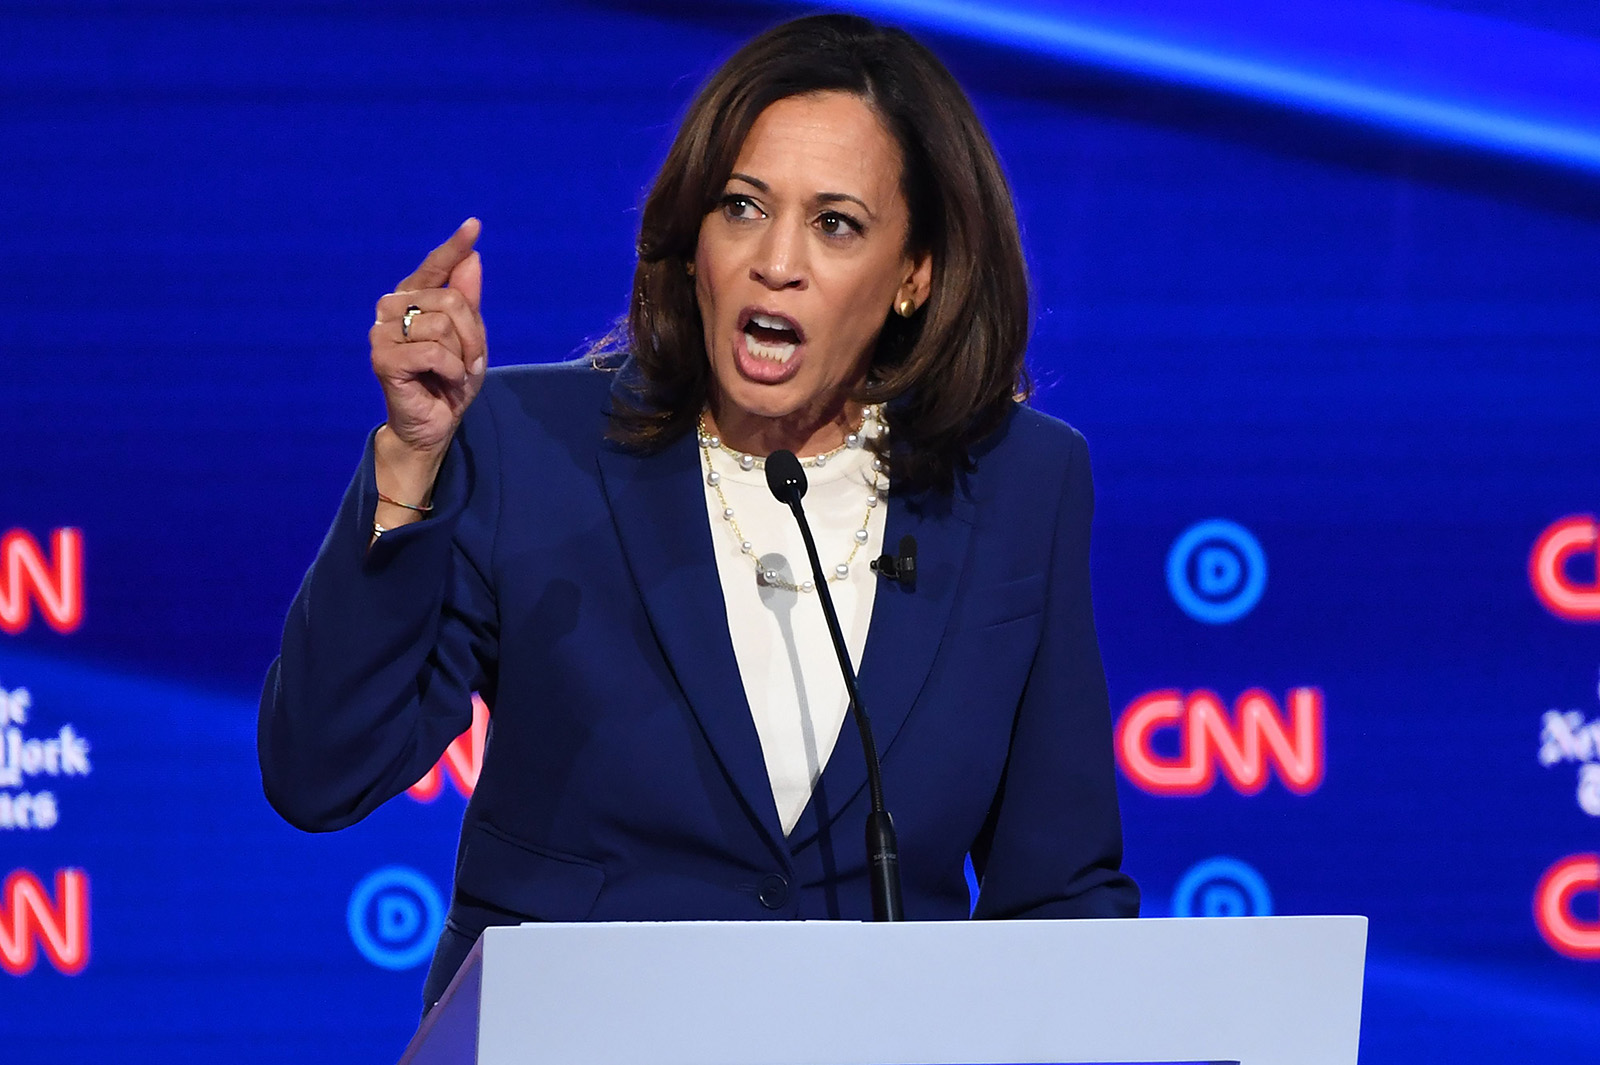 California Senator Kamala Harris speaks onstage during the fourth Democratic primary debate of the 2020 presidential campaign season co-hosted by The New York Times and CNN at Otterbein University in Westerville, Ohio on October 15, 2019.